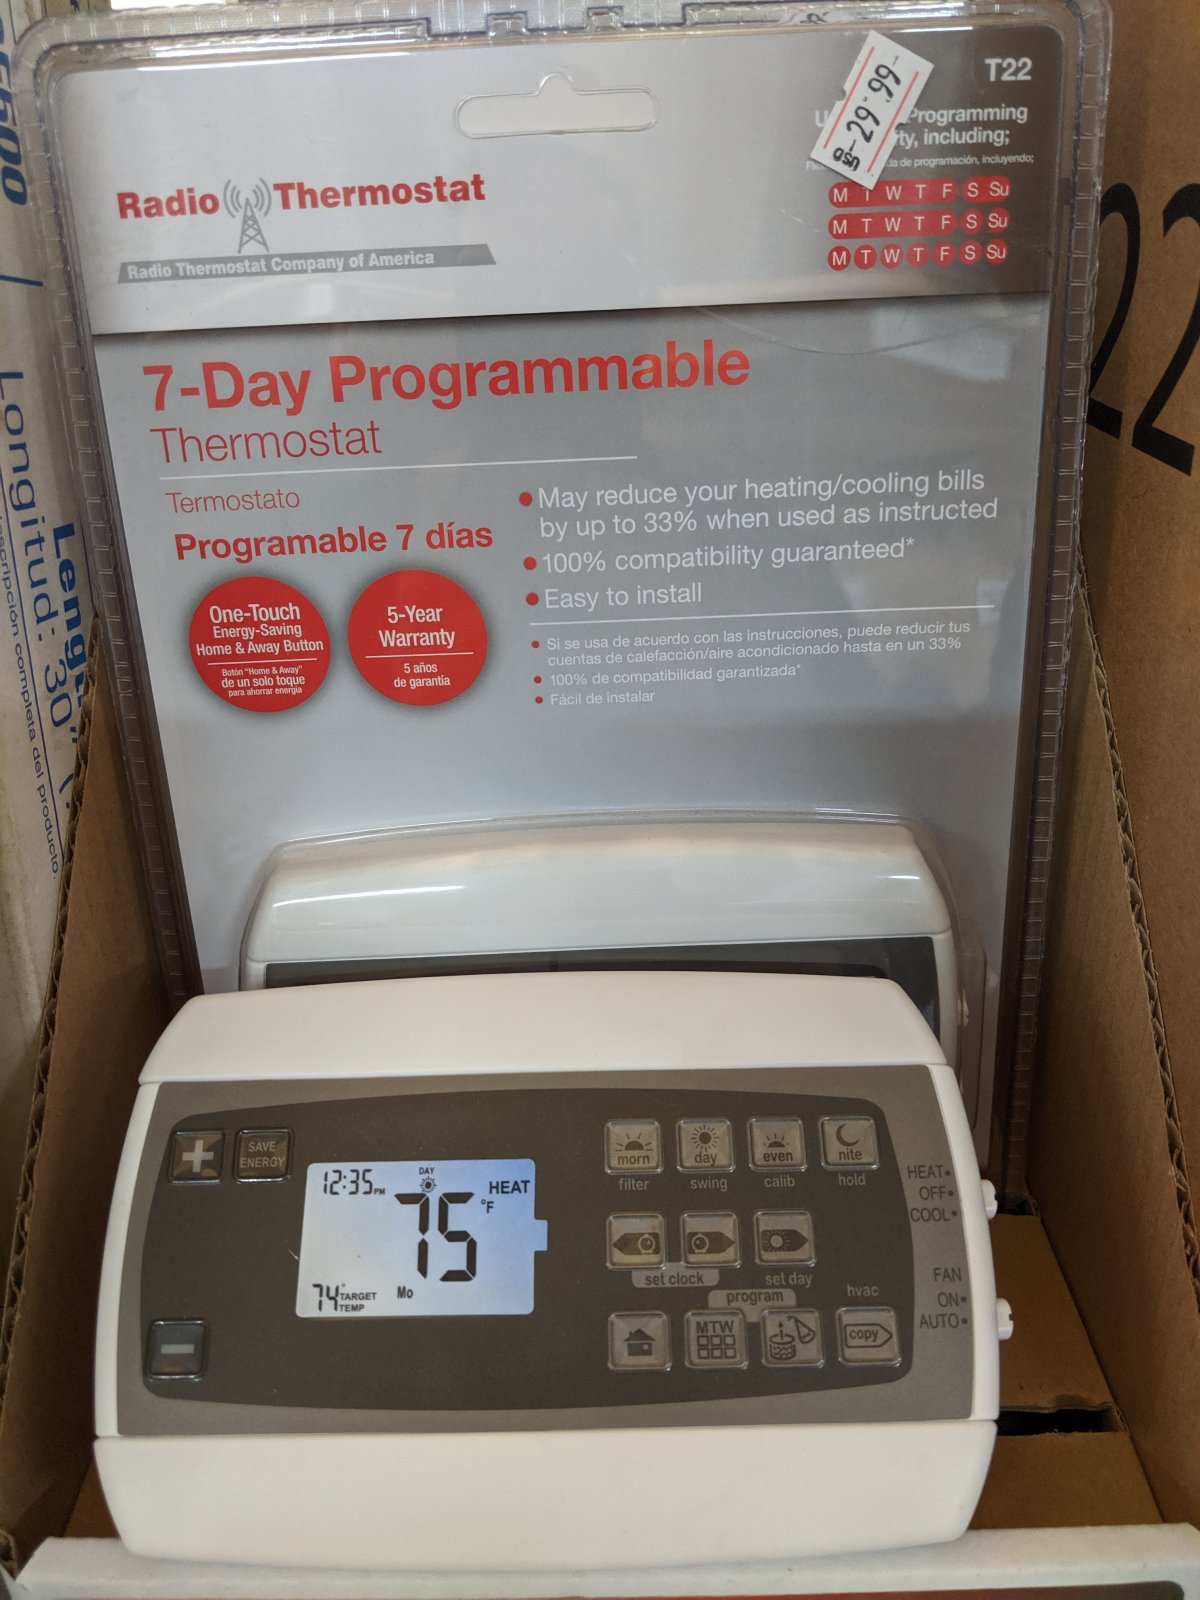 Radio Thermostat T22 Digital 7 Day Programmable Thermostat